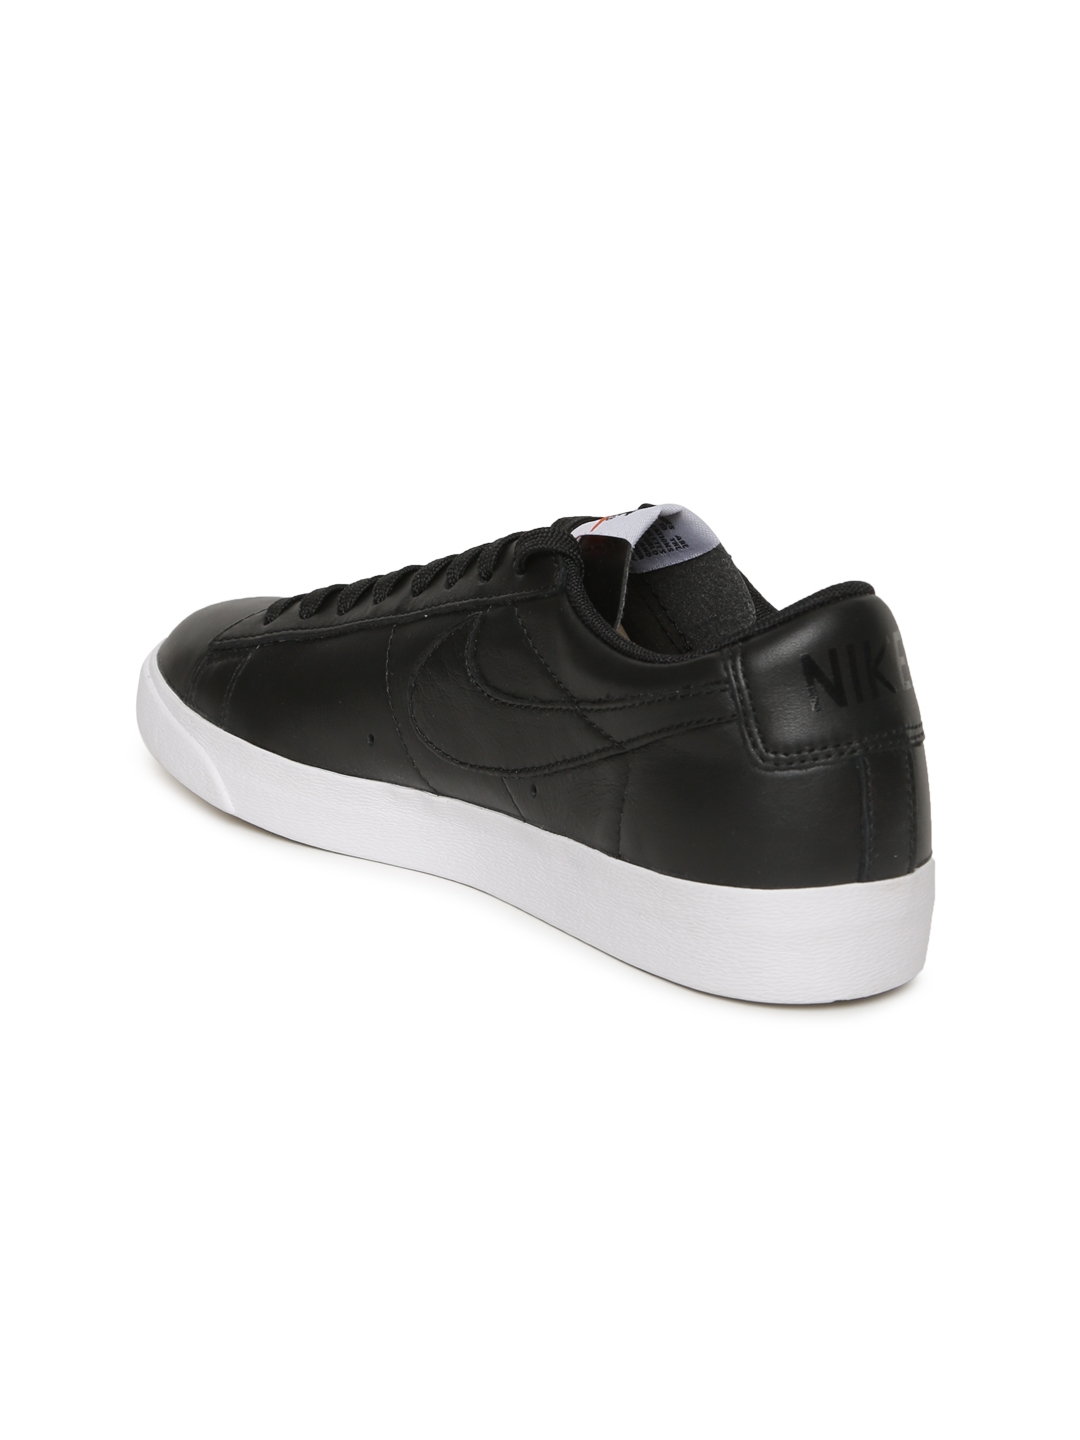 626dd2b2e048f Buy Nike Women Black BLAZER LOW Leather Sneakers - Casual Shoes for ...